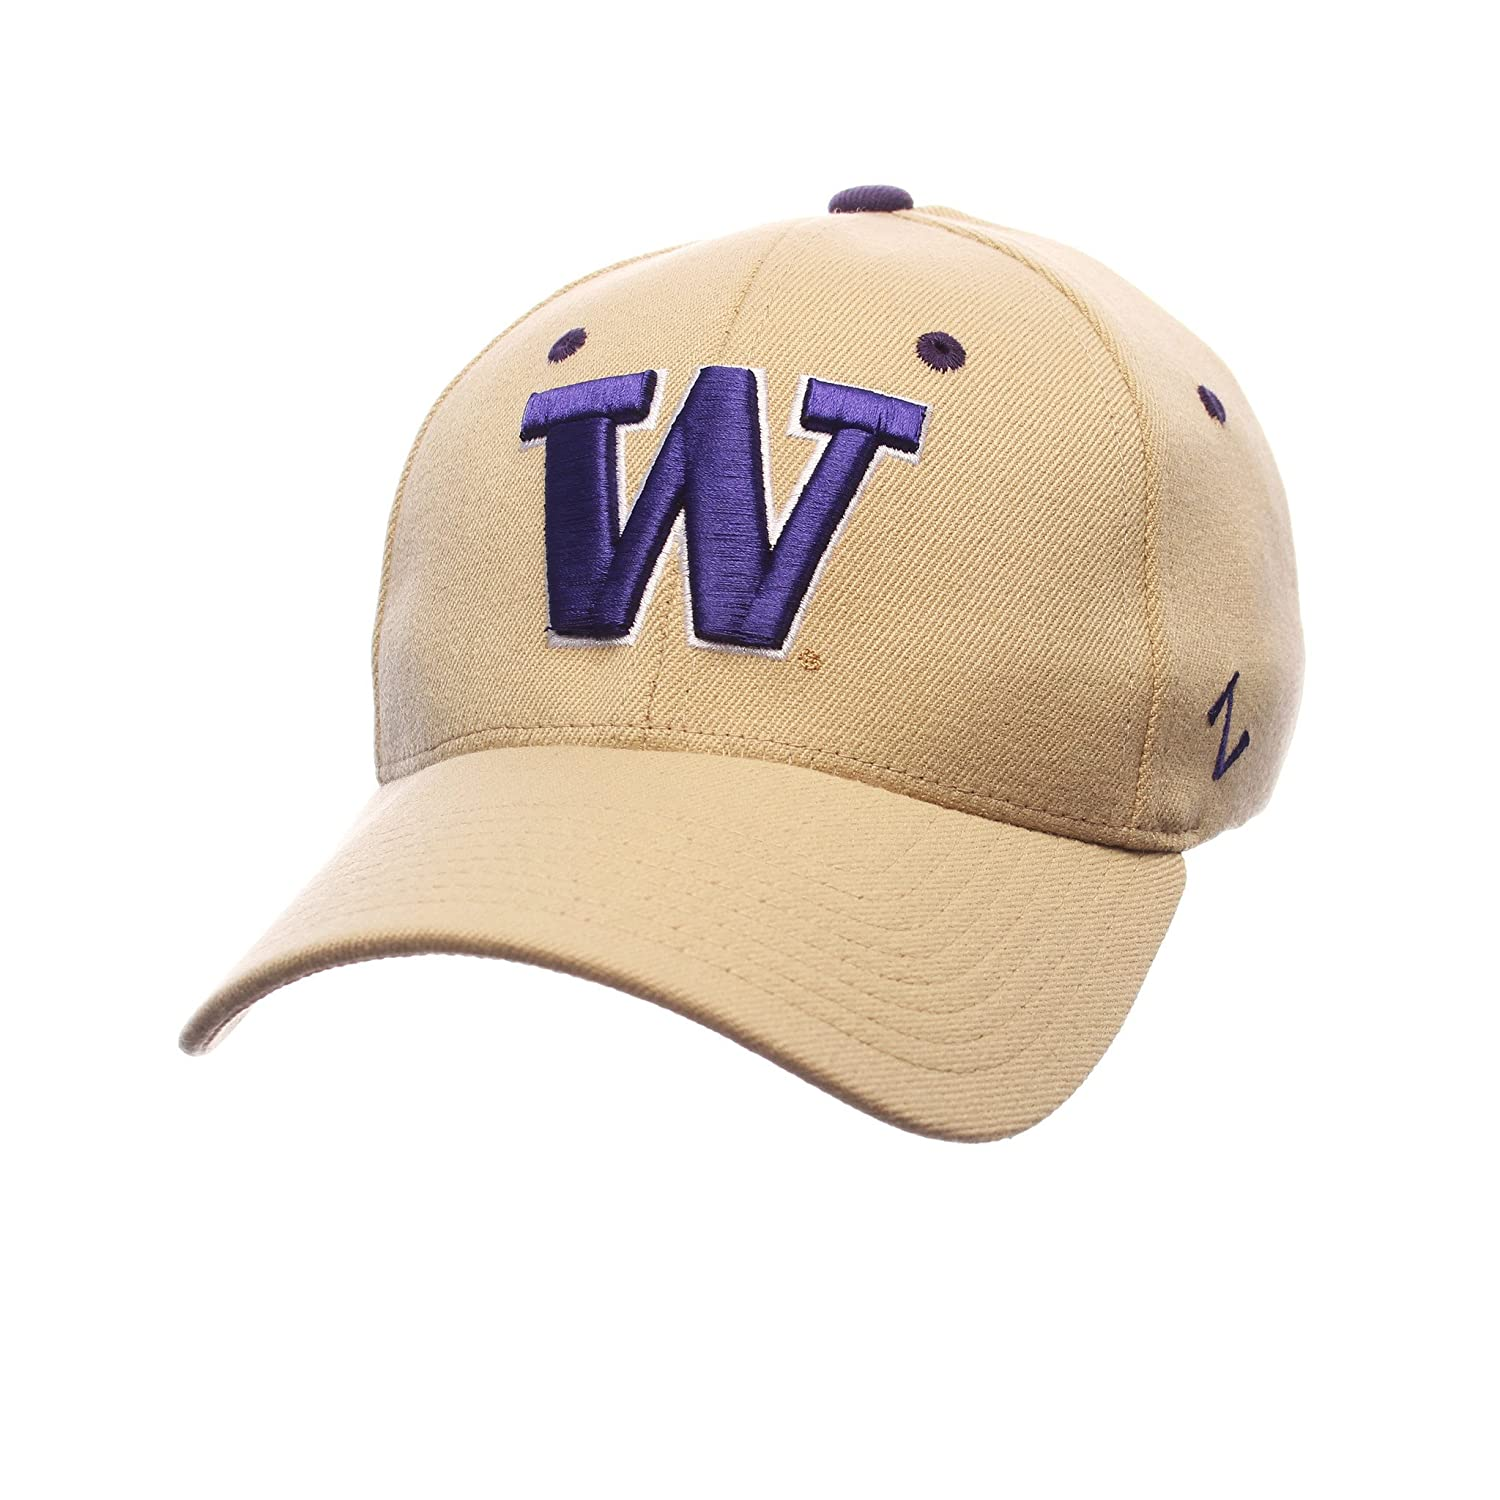 Zephyr Men 's Washington Huskies ZH Zwoolストレッチフィット帽子 Large  B01NBFZ8YV